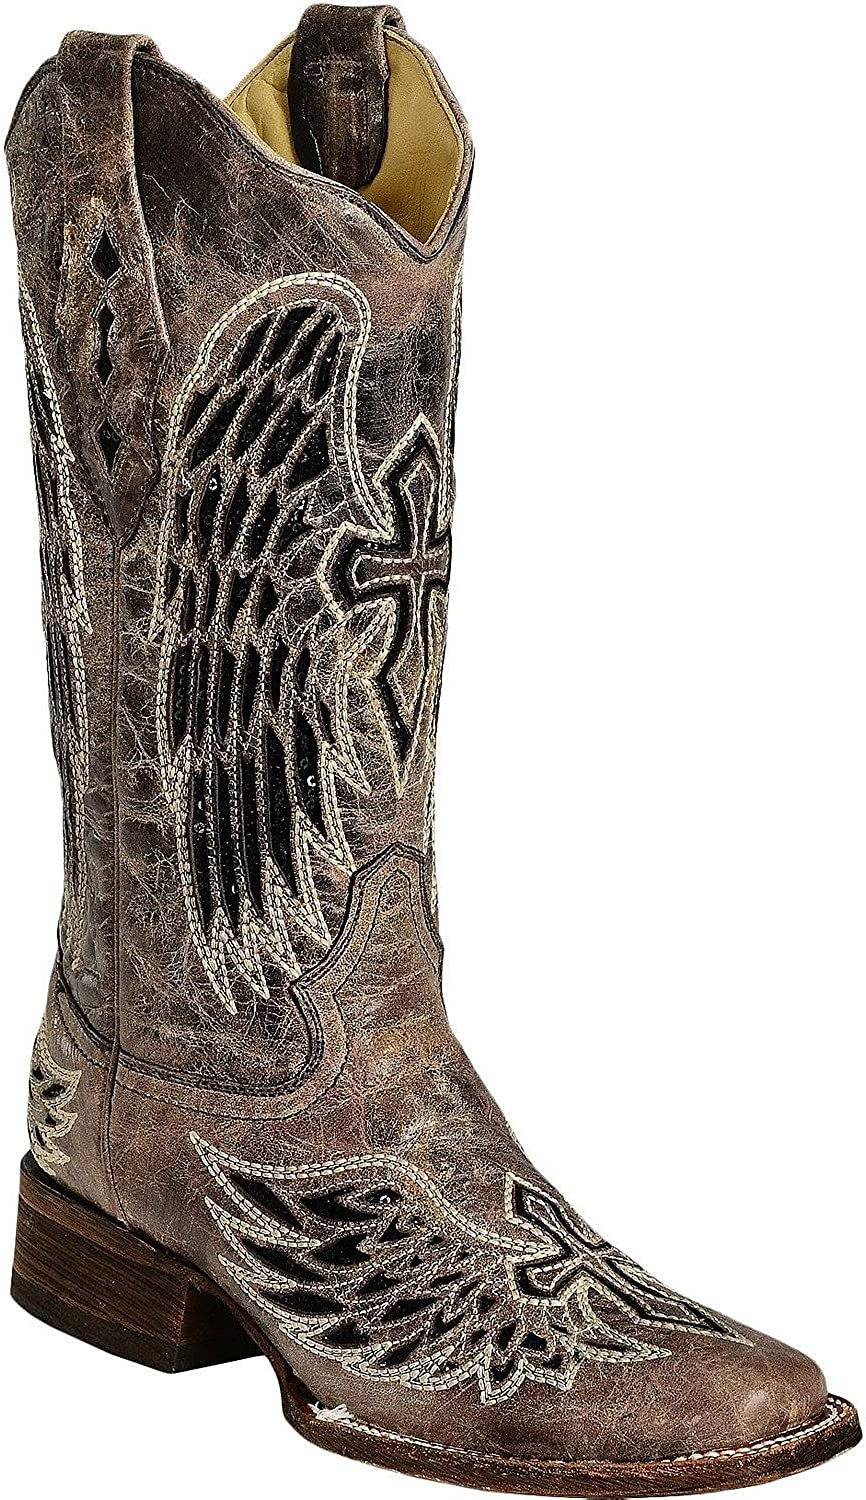 Corral Women's Sequin Wing And Cross Inlay Cowgirl Boot Square Toe